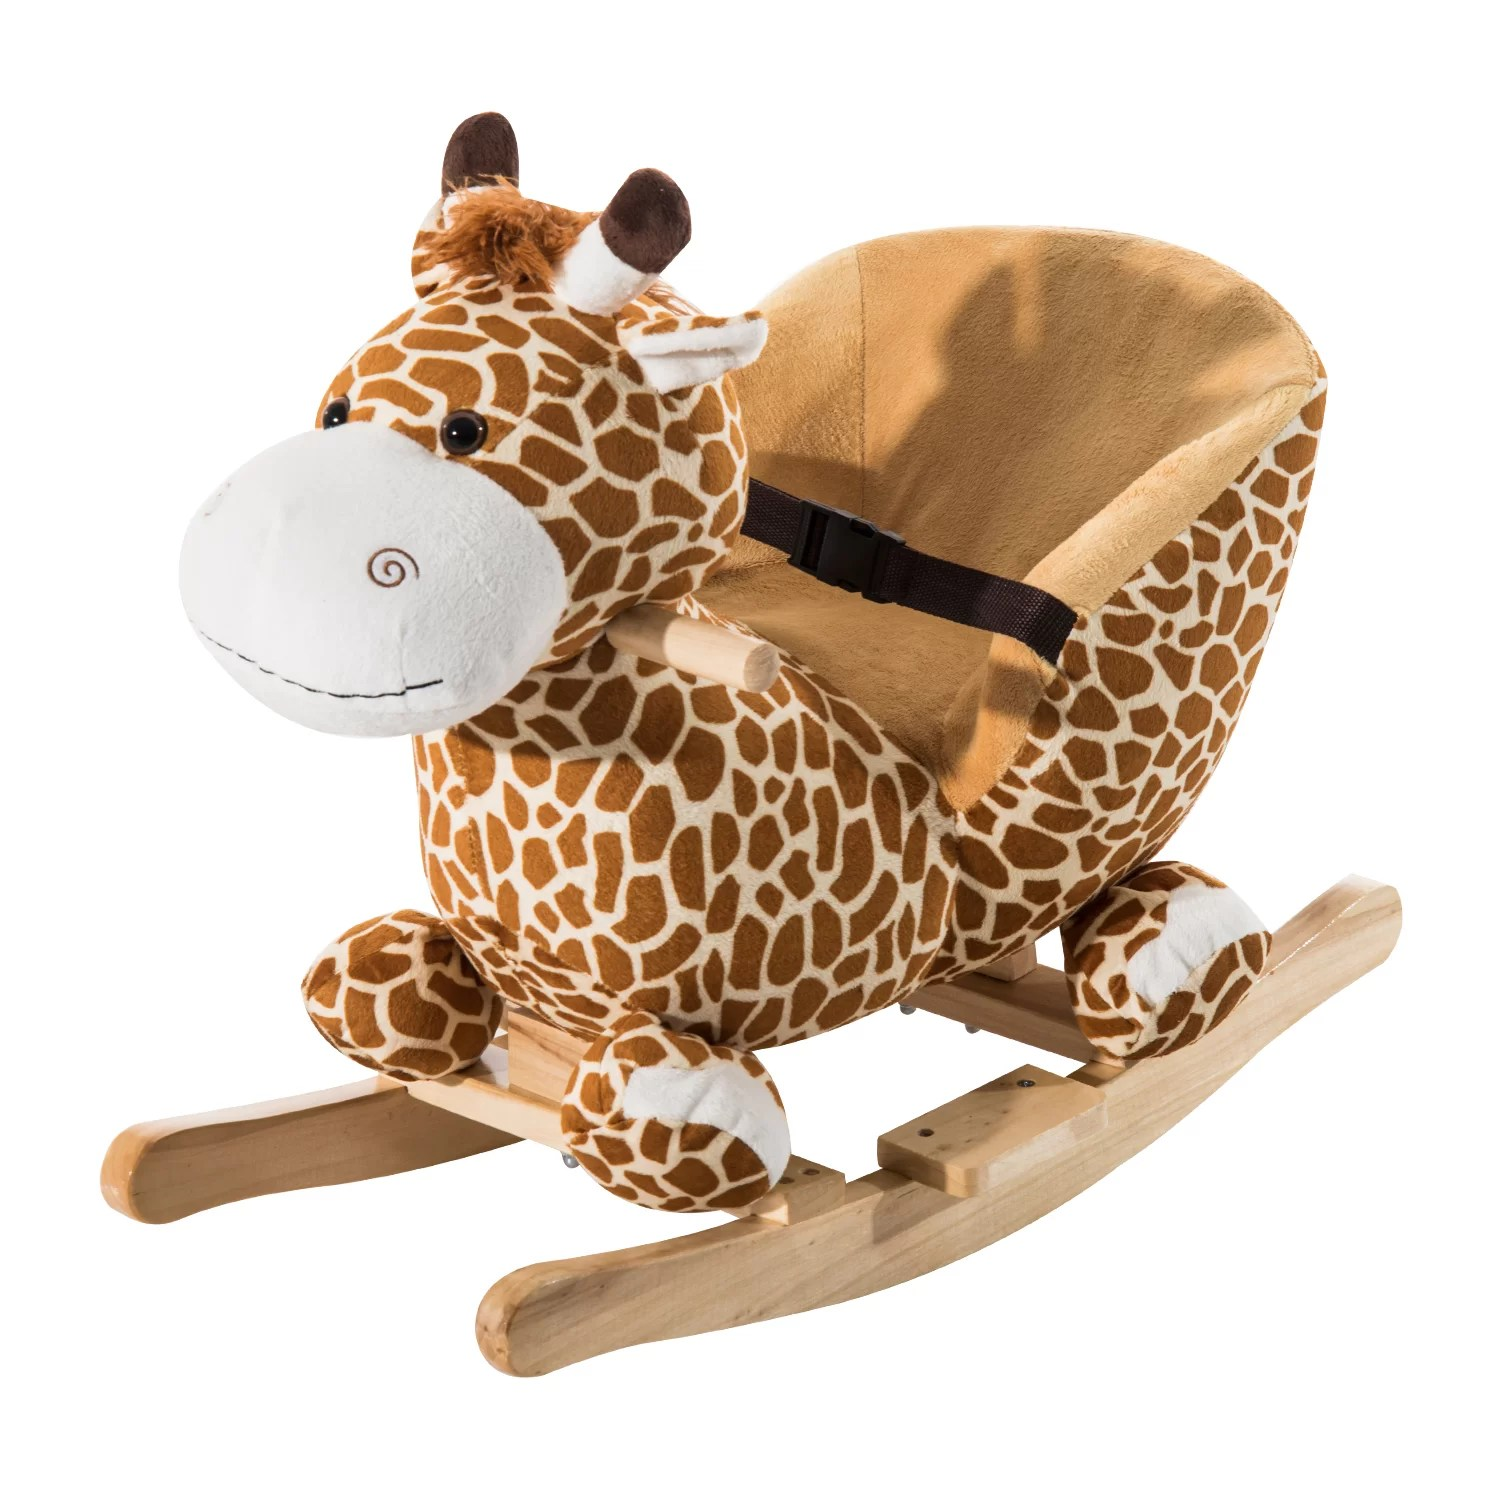 Giraffe Rocking Chair Giraffe Plush Rocking Horse Wayfair